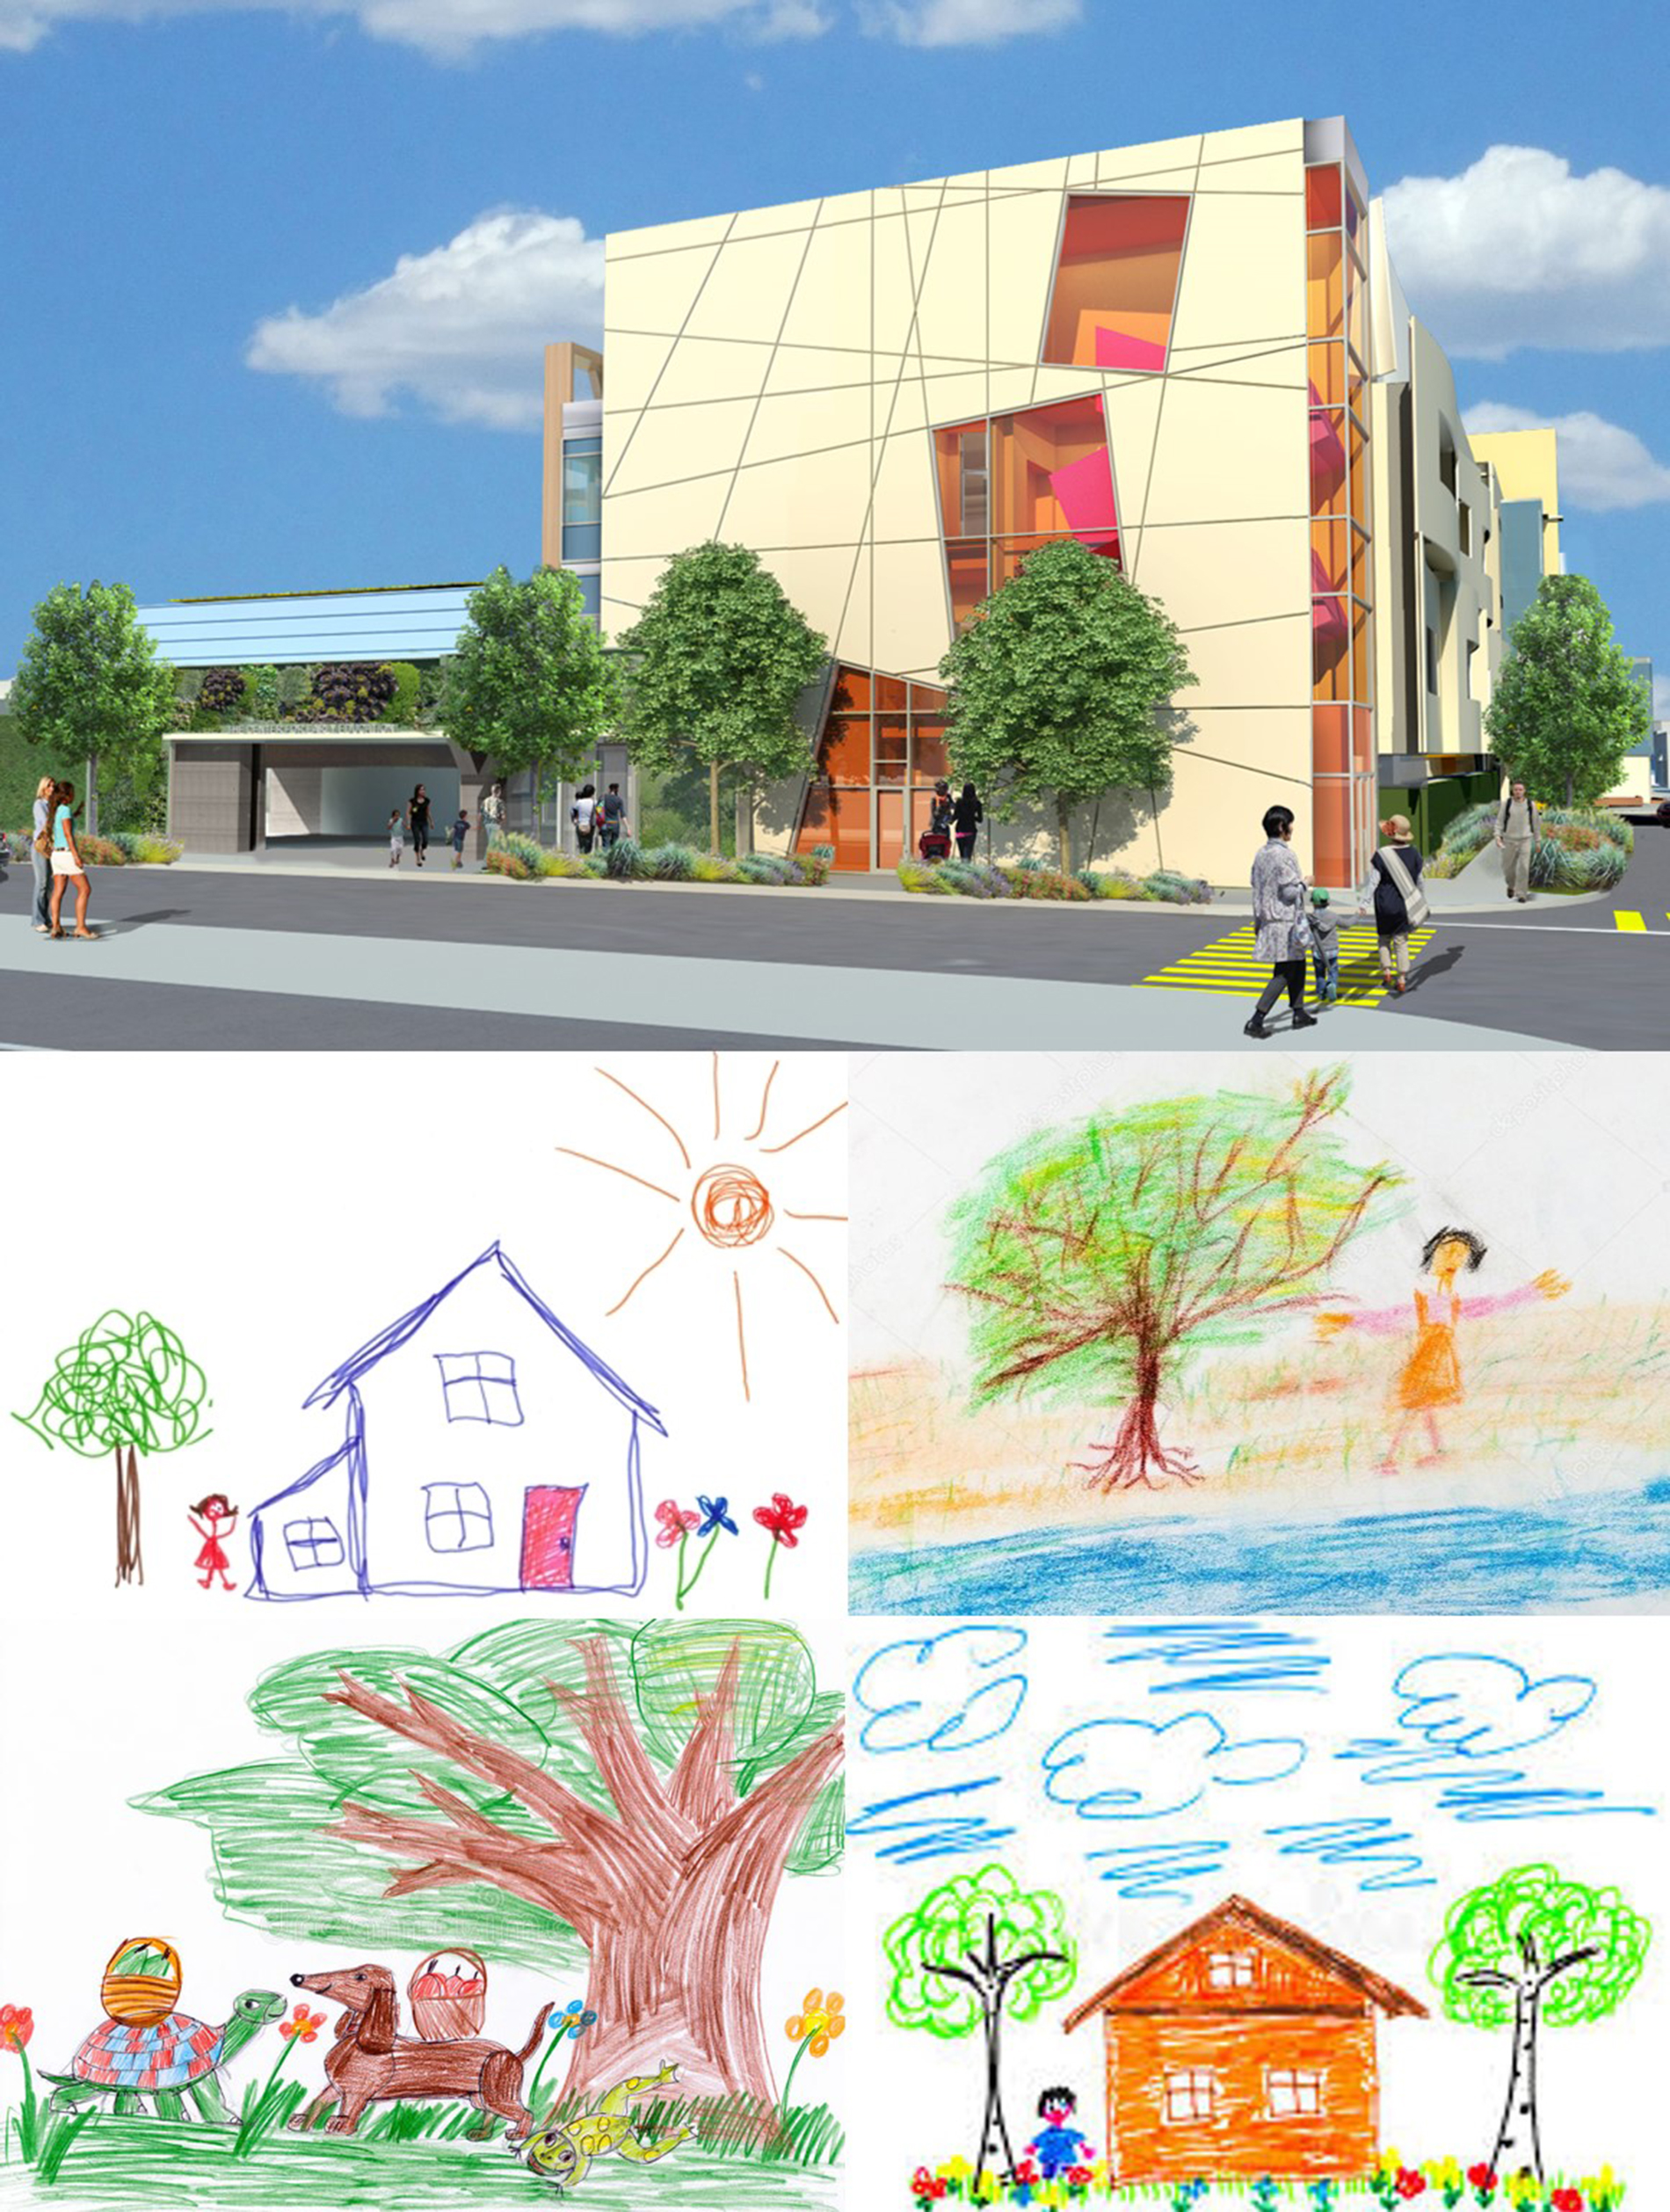 The Alfred Street facade of the Clinton wing of the CEE redevelopment project is inspired in part by the spontaneity of a child's drawing.